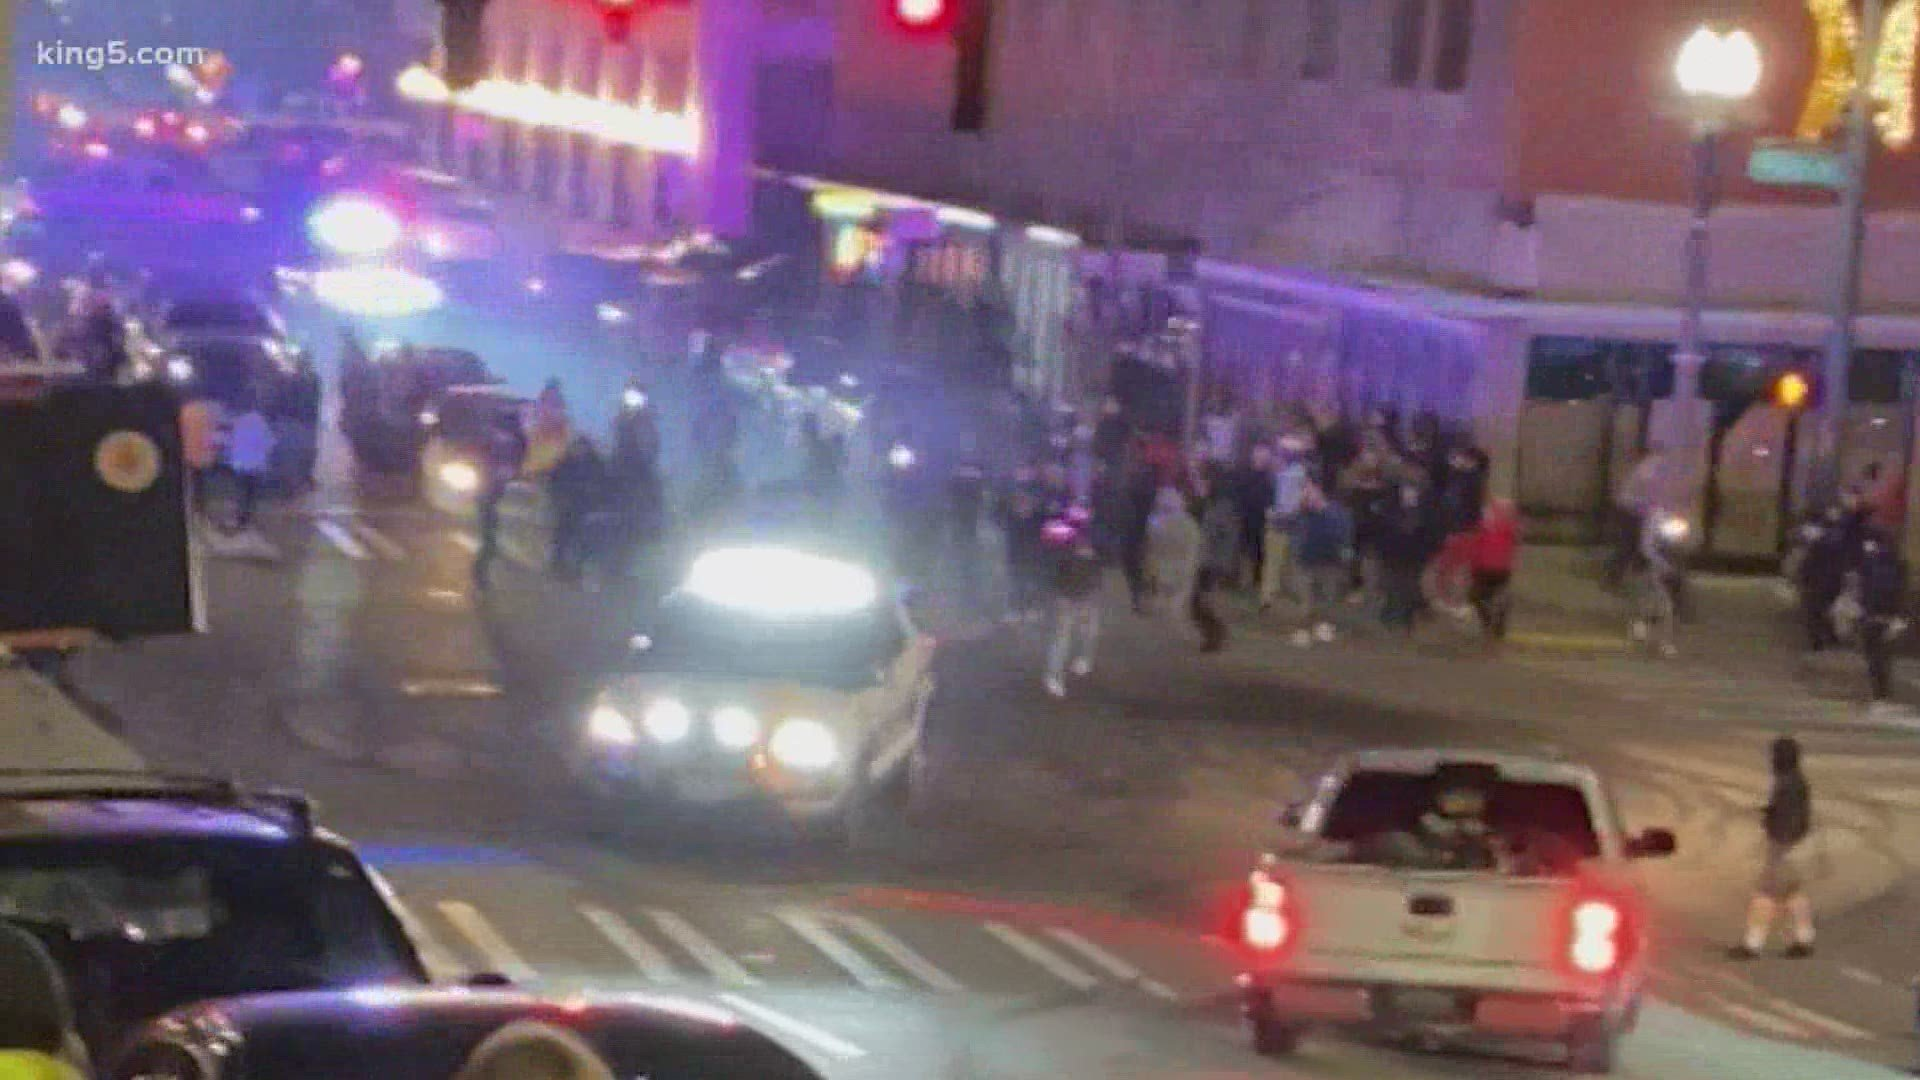 Tacoma officer who drove police car through crowd at street race has been identified | king5.com